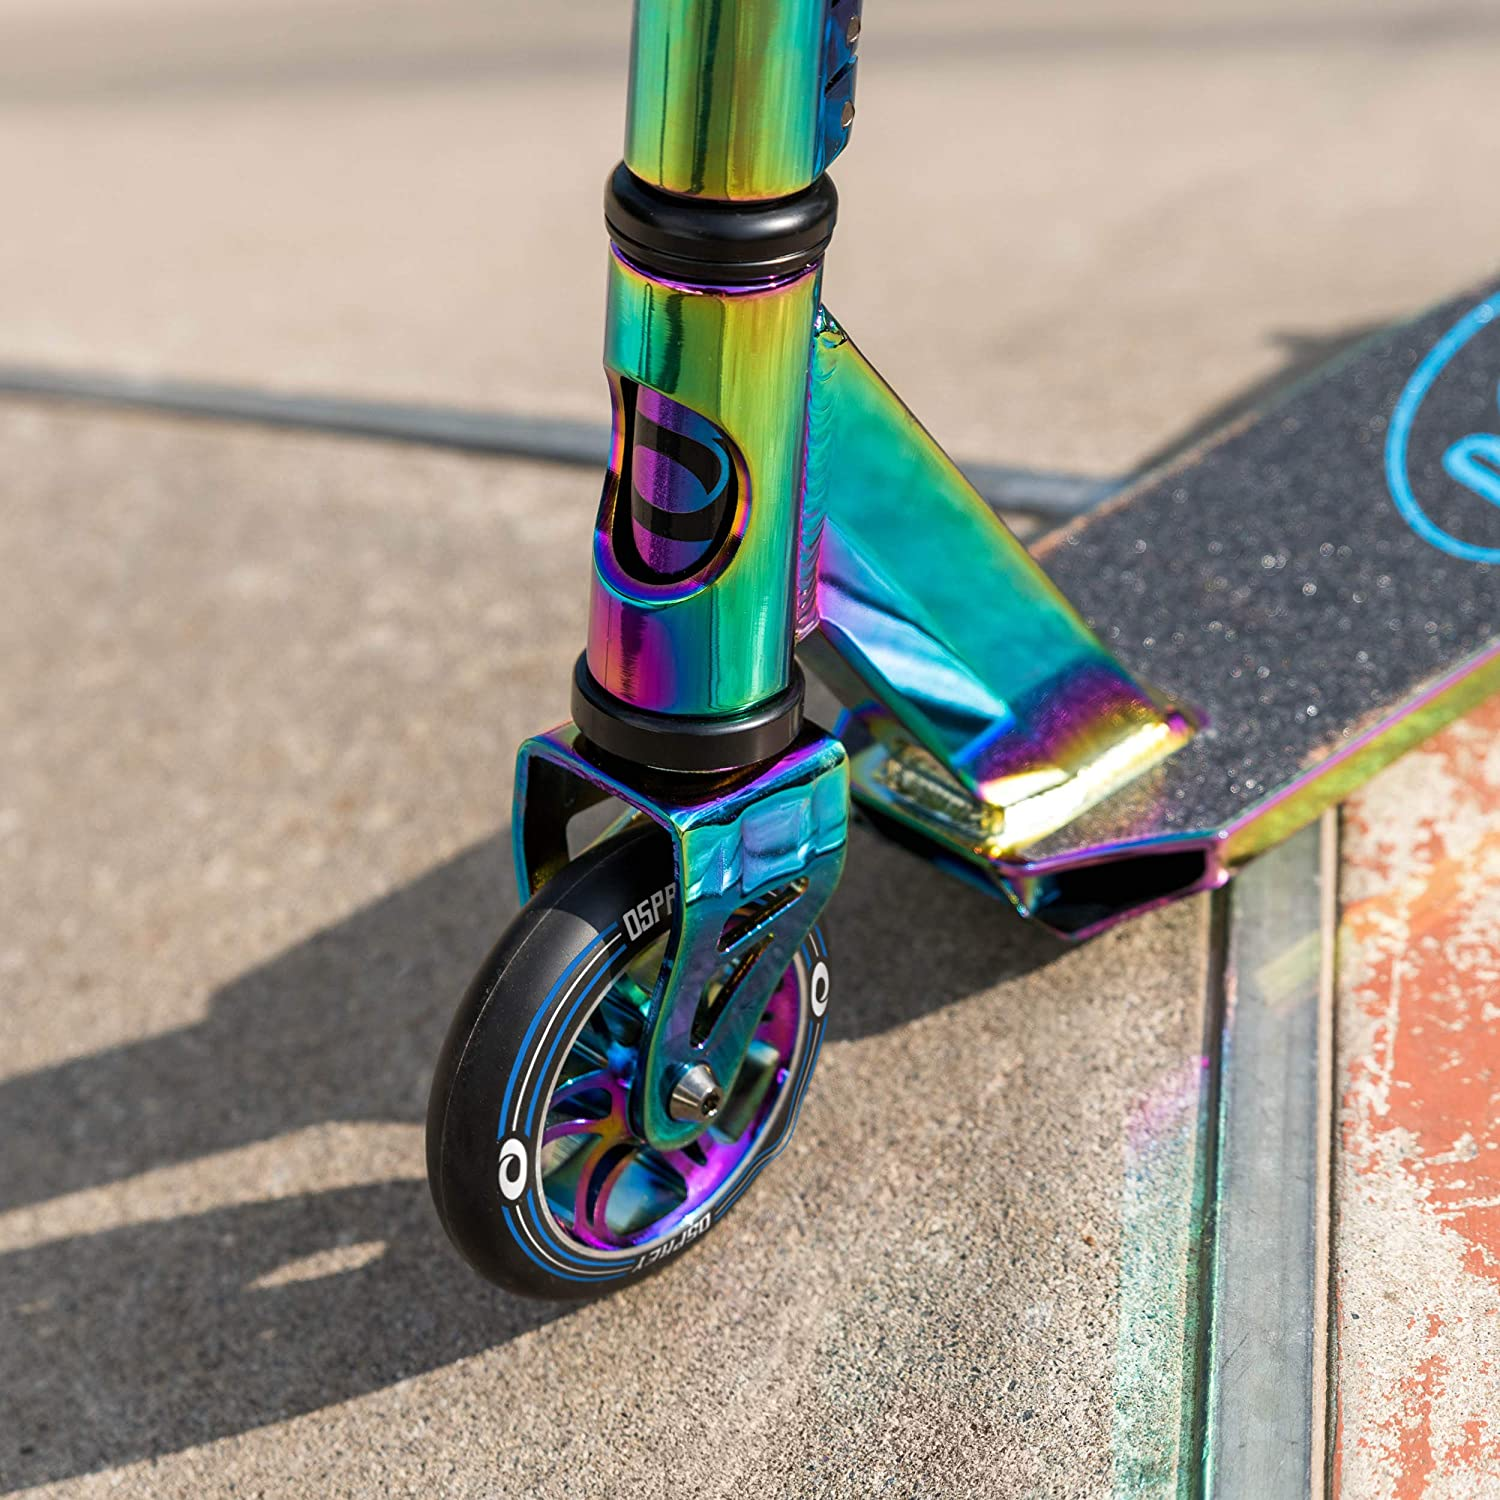 Osprey Stunt Scooter for Adults and Kids Boys Girls Advanced High Spec Trick T-Bar Scooter with ABEC 7 Bearings Neo Elite